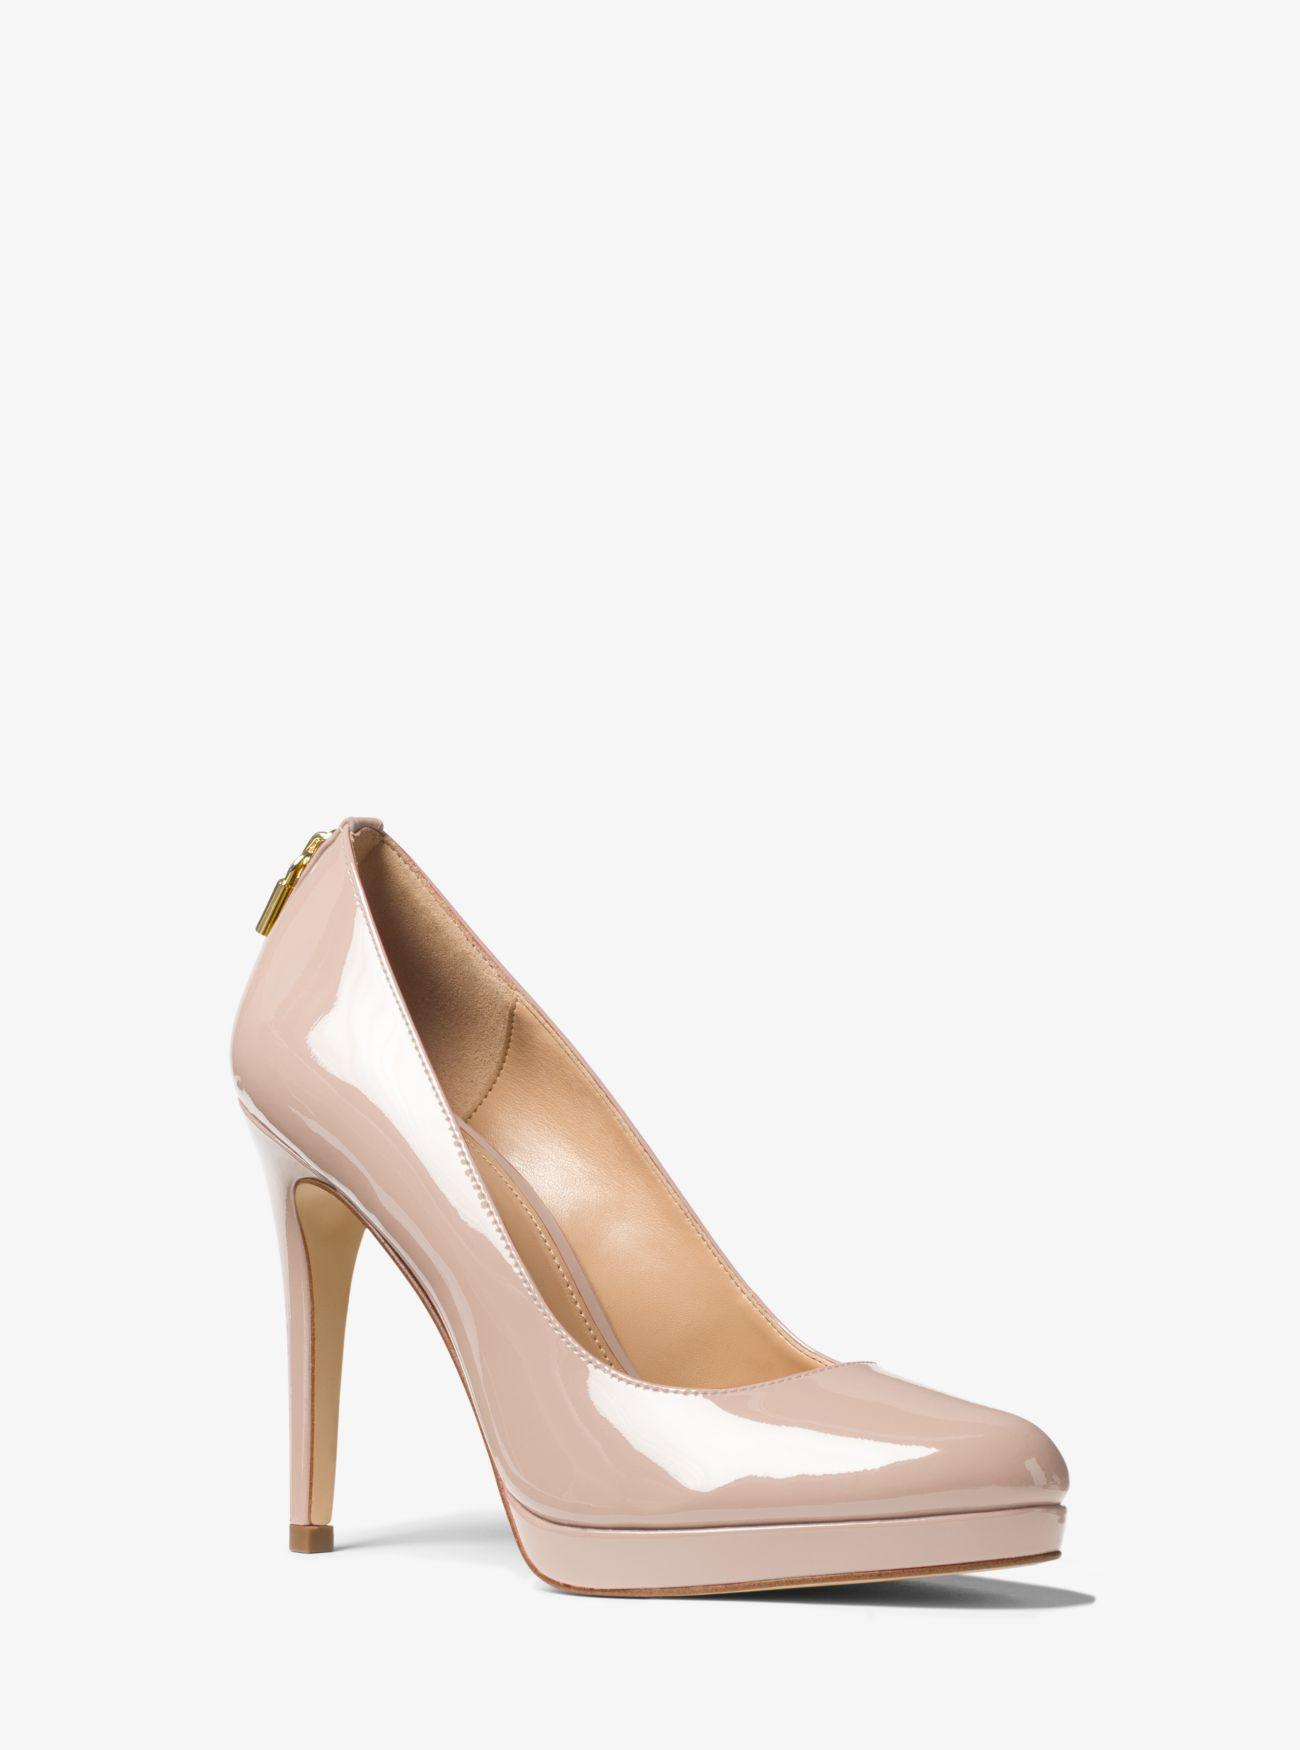 bd5bef9e8773 MICHAEL Michael Kors Antoinette Patent Leather Pump in Pink - Lyst